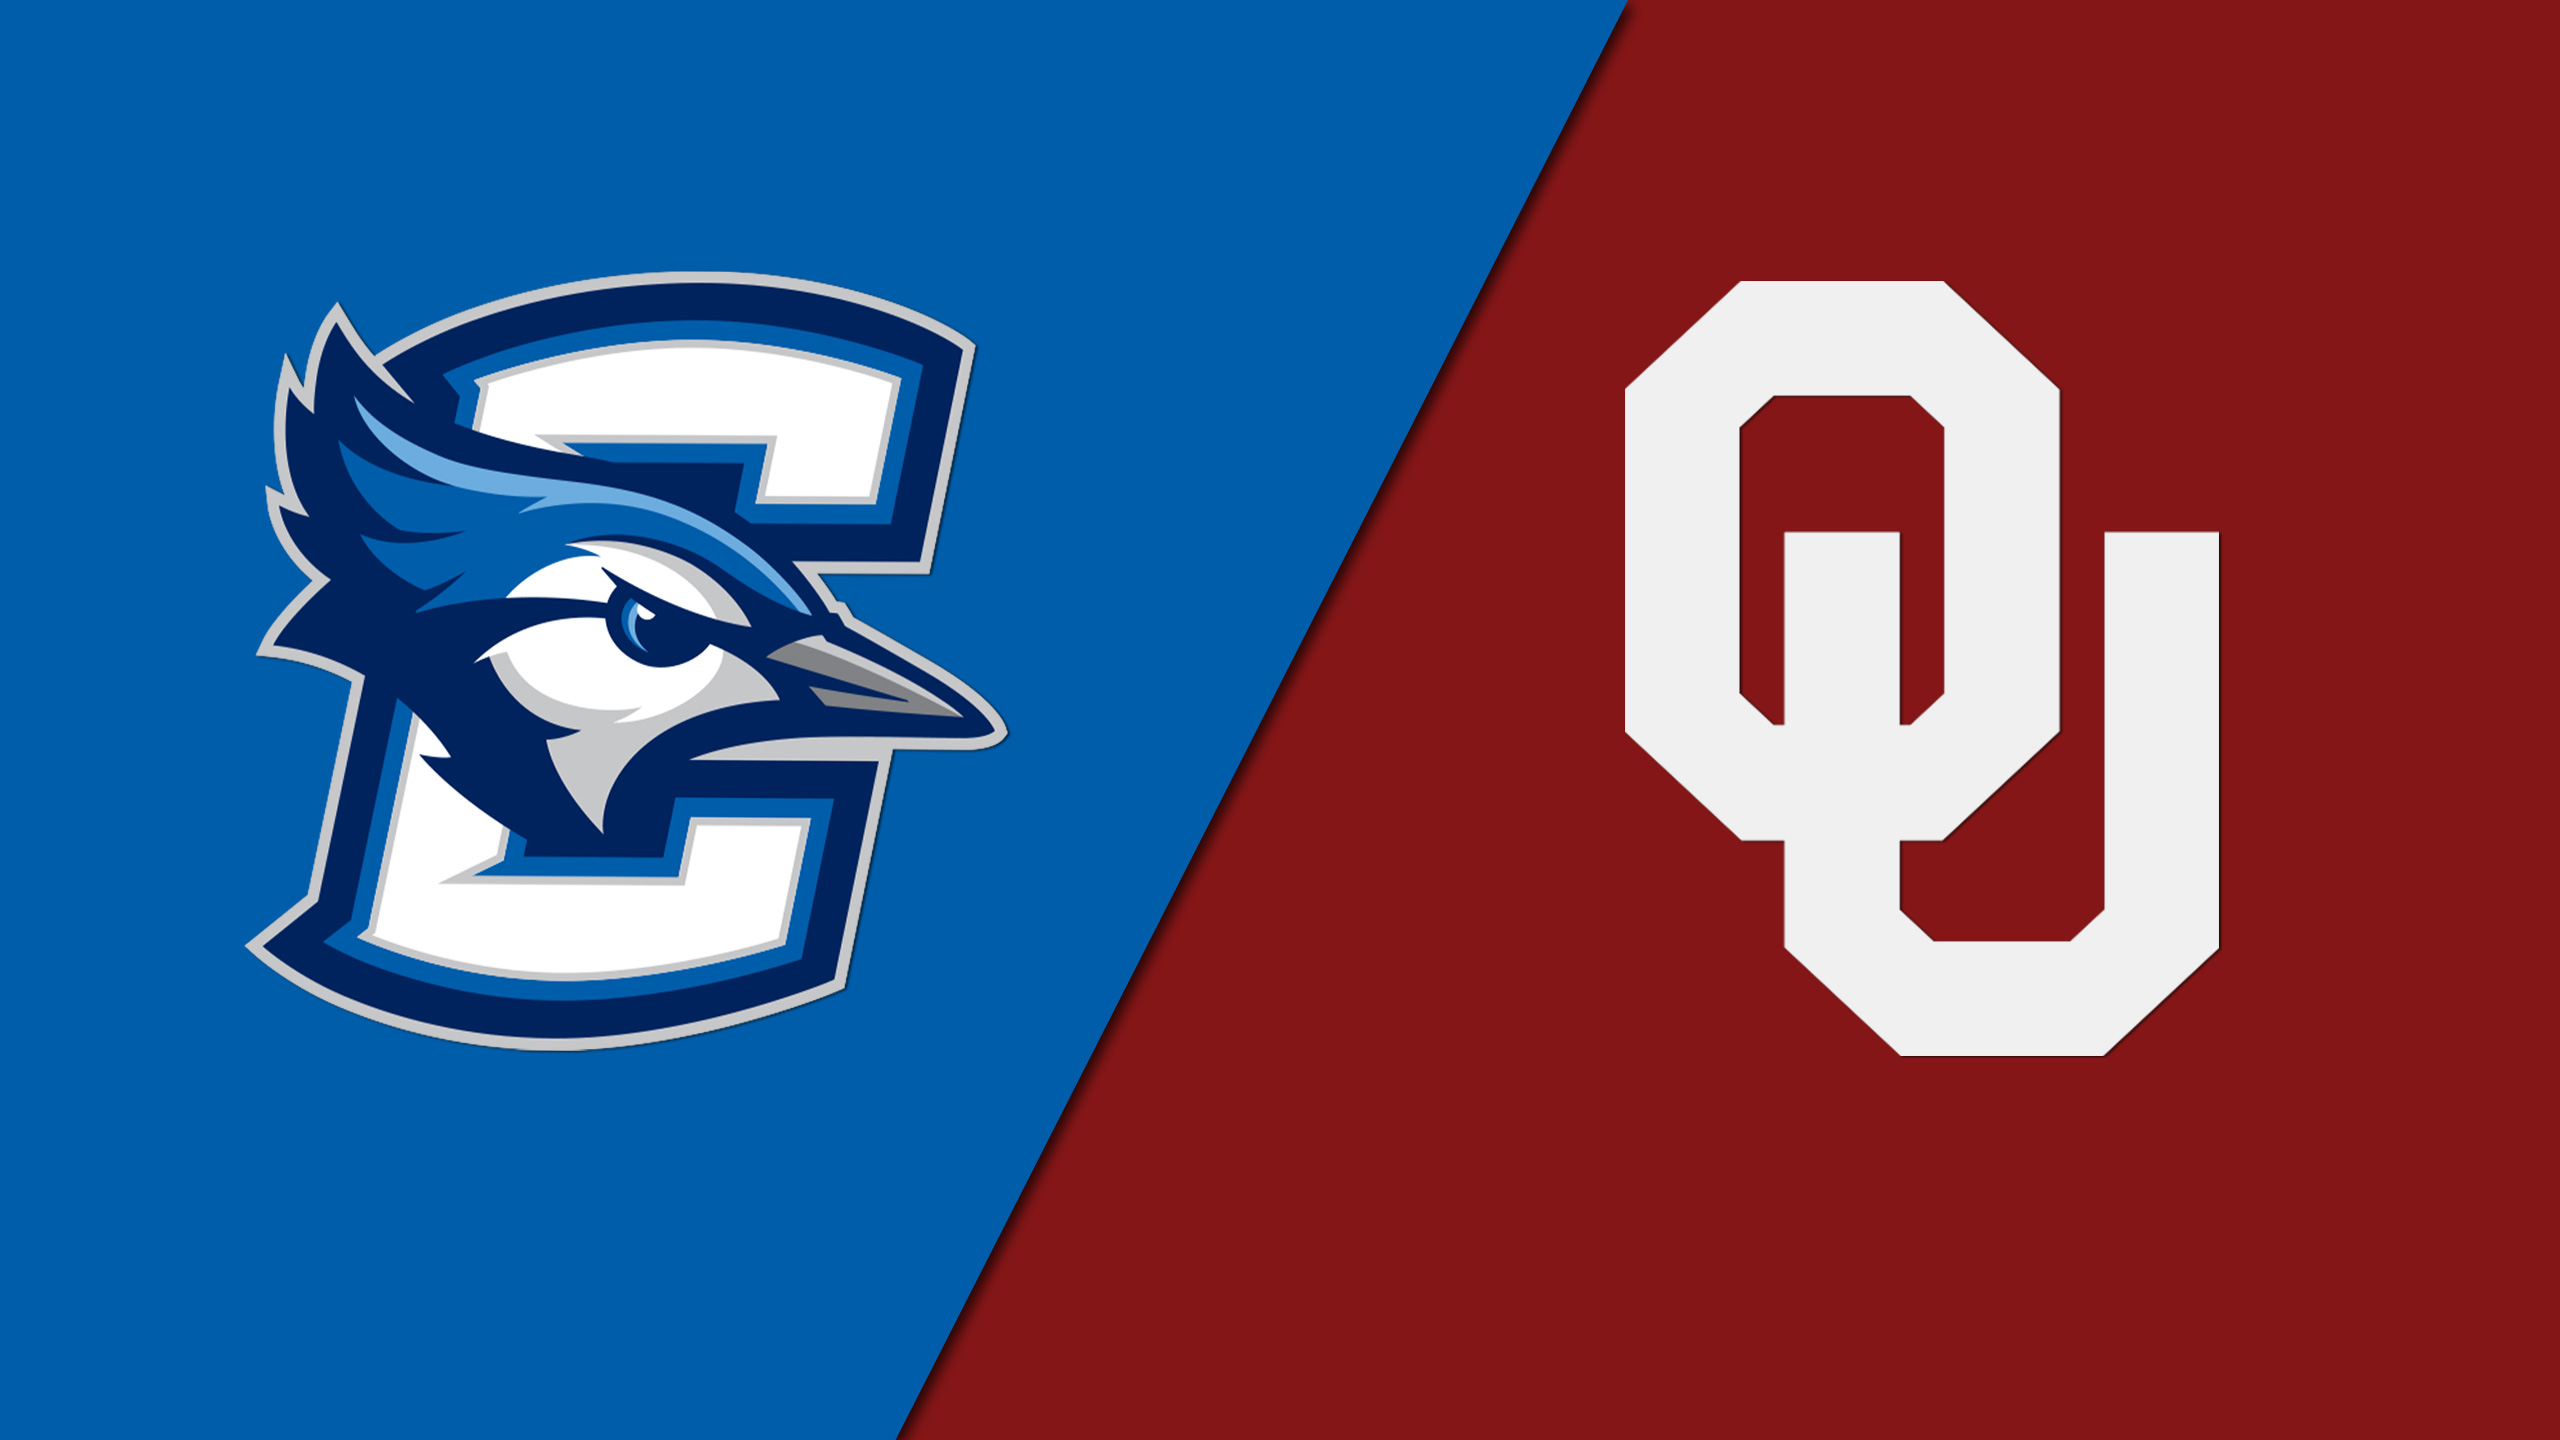 Creighton vs. Oklahoma (M Basketball) (re-air)